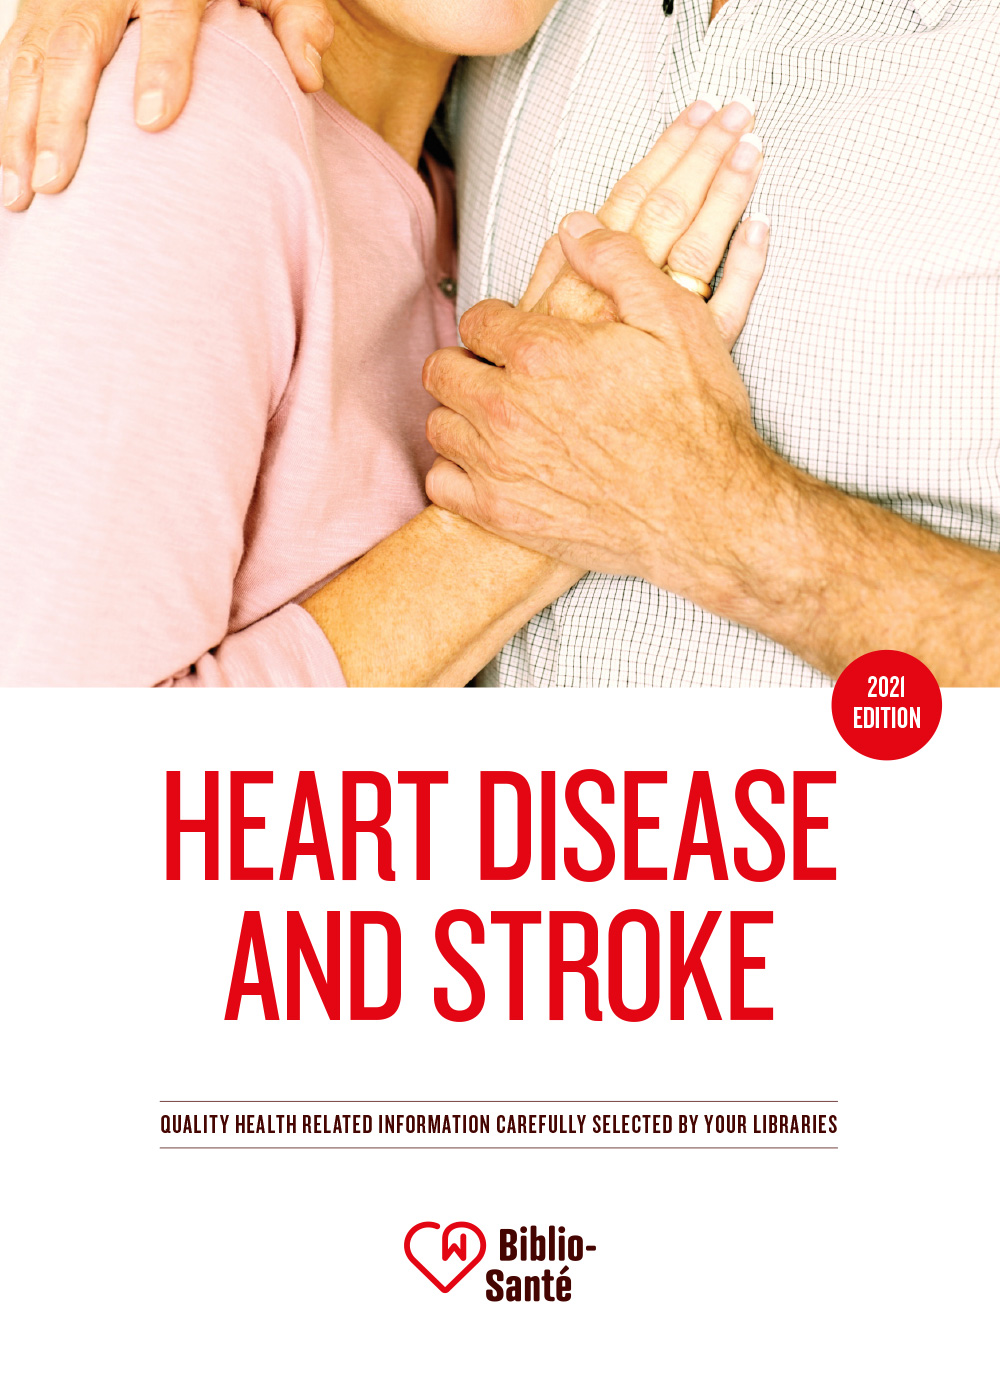 Heart disease and stroke booklet